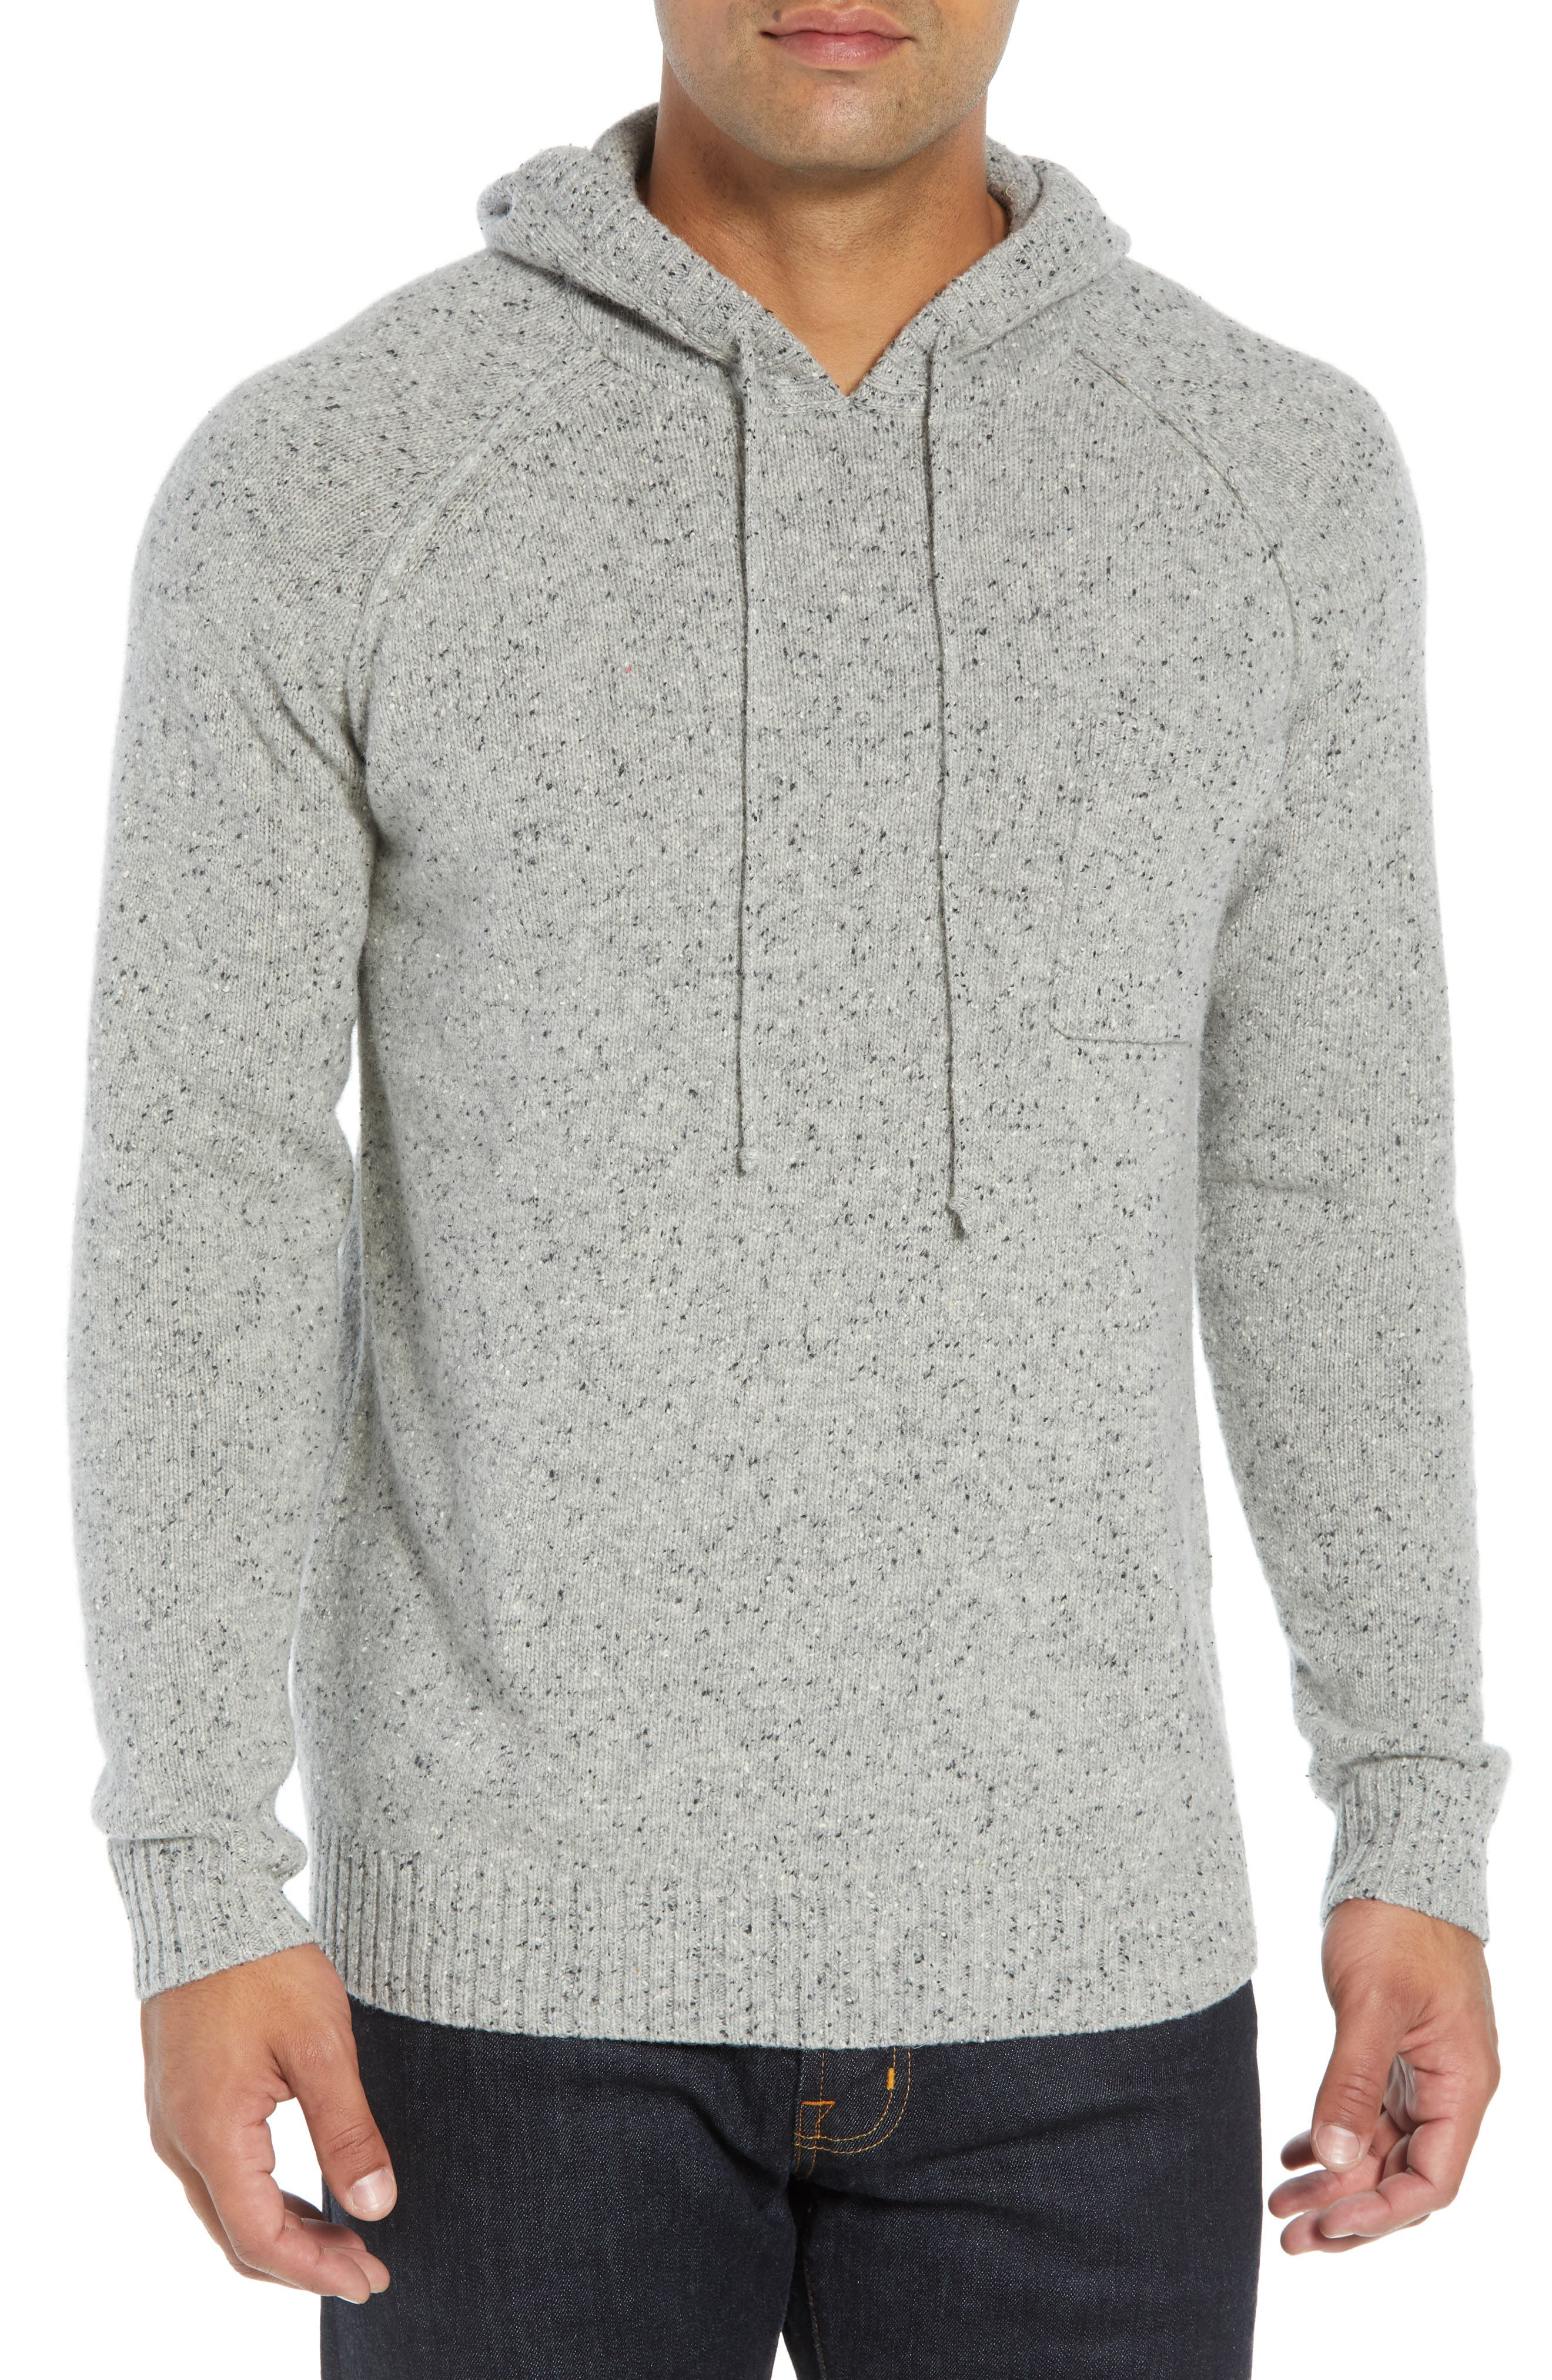 Rule 93 Donegal Regular Fit Hooded Sweater,                             Main thumbnail 1, color,                             GREY